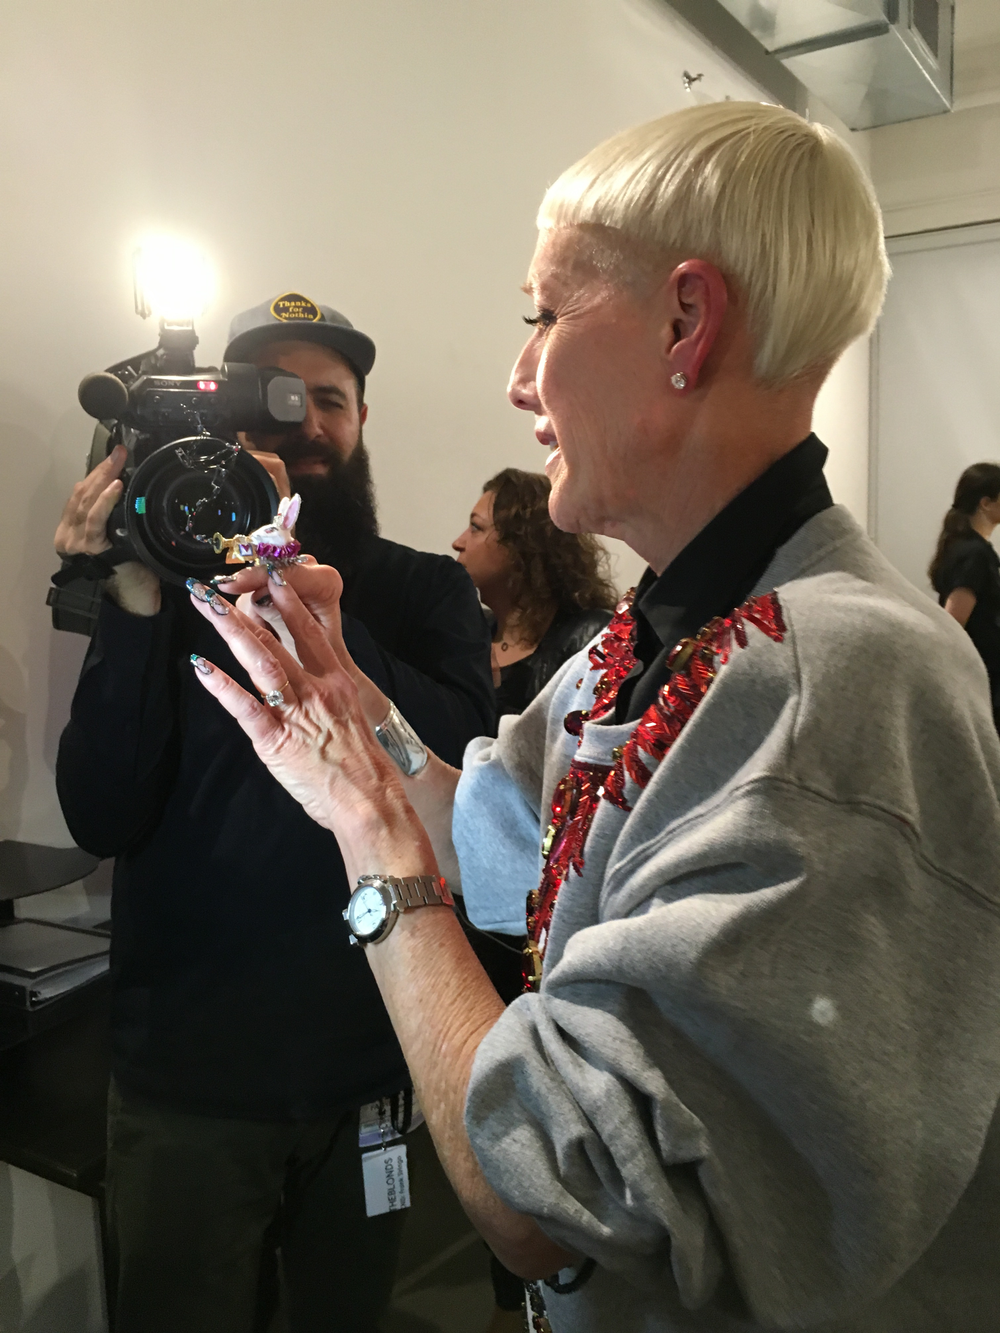 <p>Jan Arnold speaking to the press backstage before The Blonds show</p>